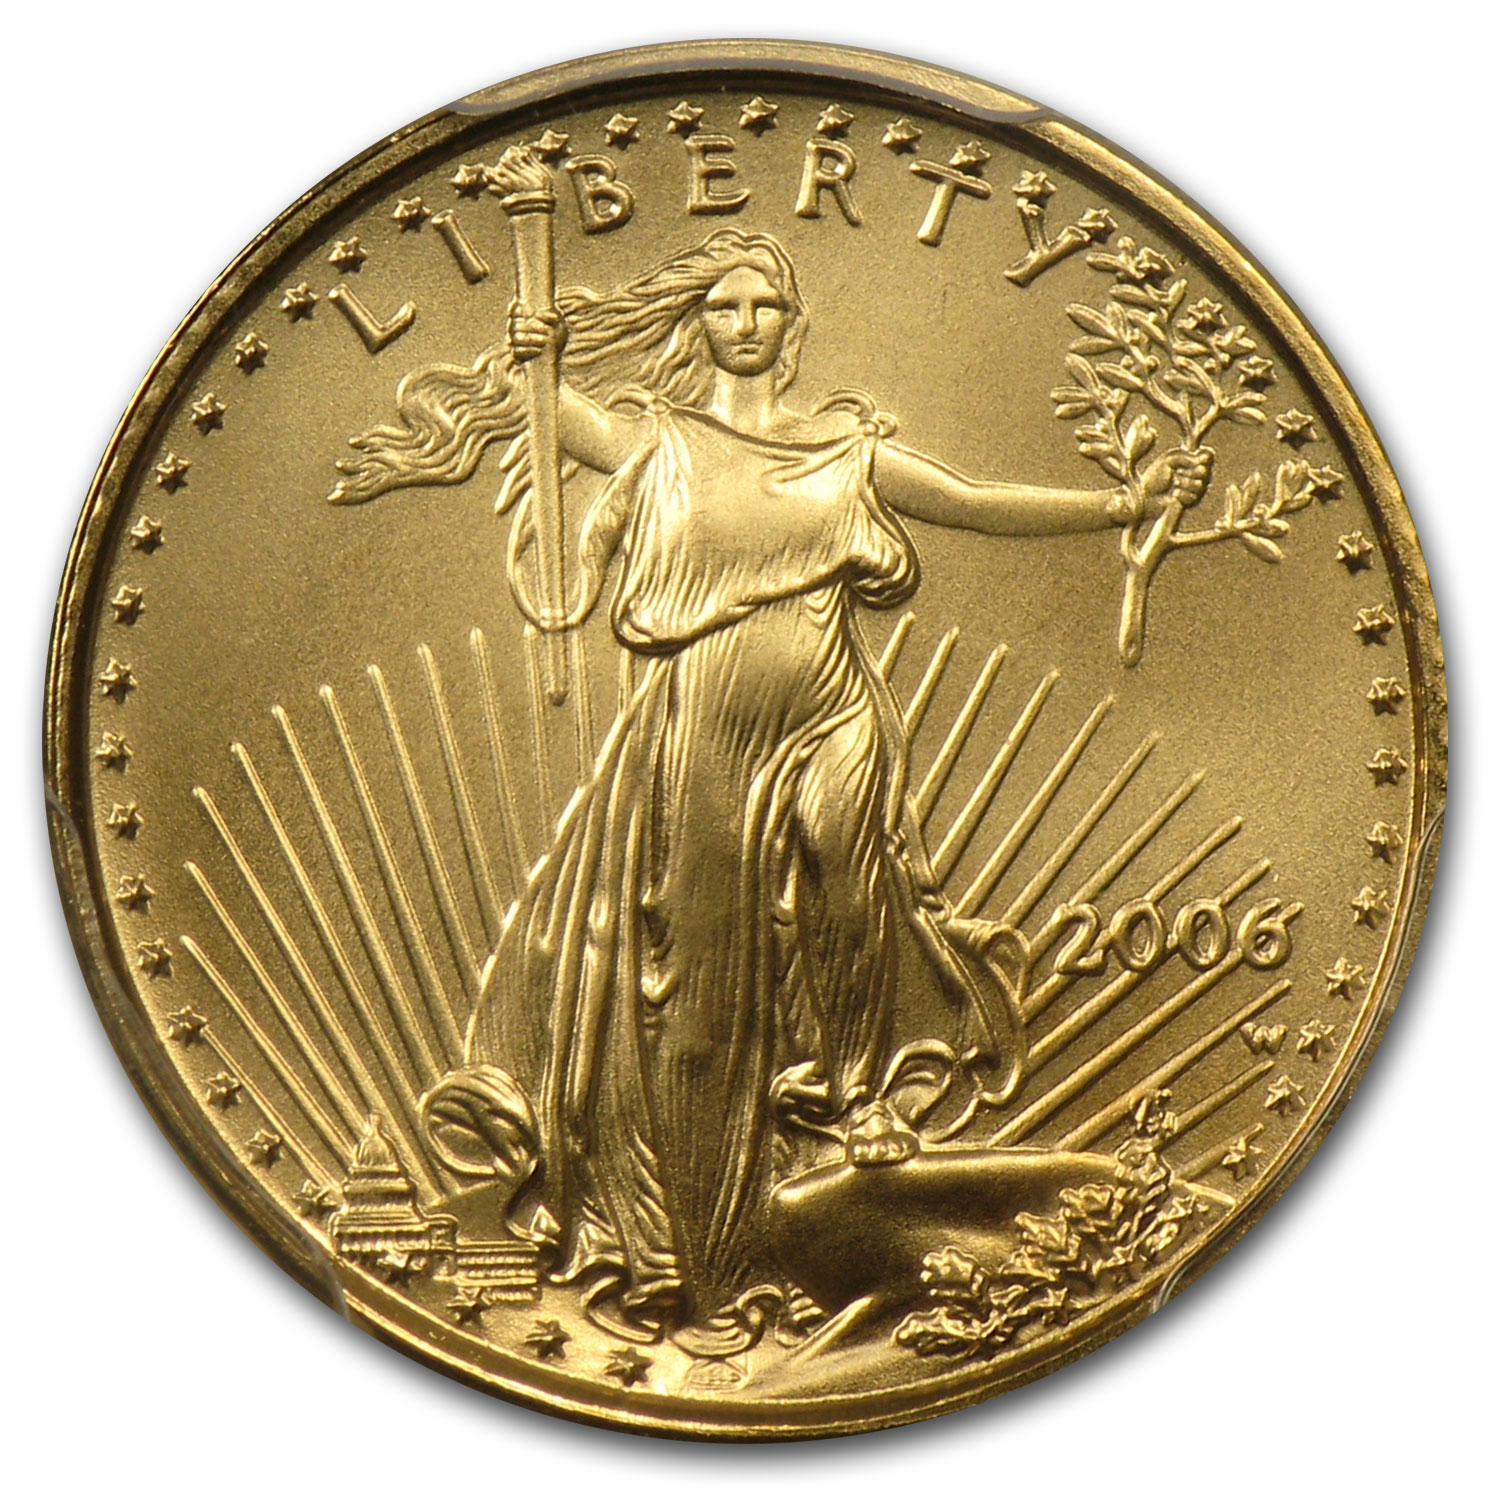 2006-W 1/10 oz Gold American Eagle MS-70 PCGS - West Point Label